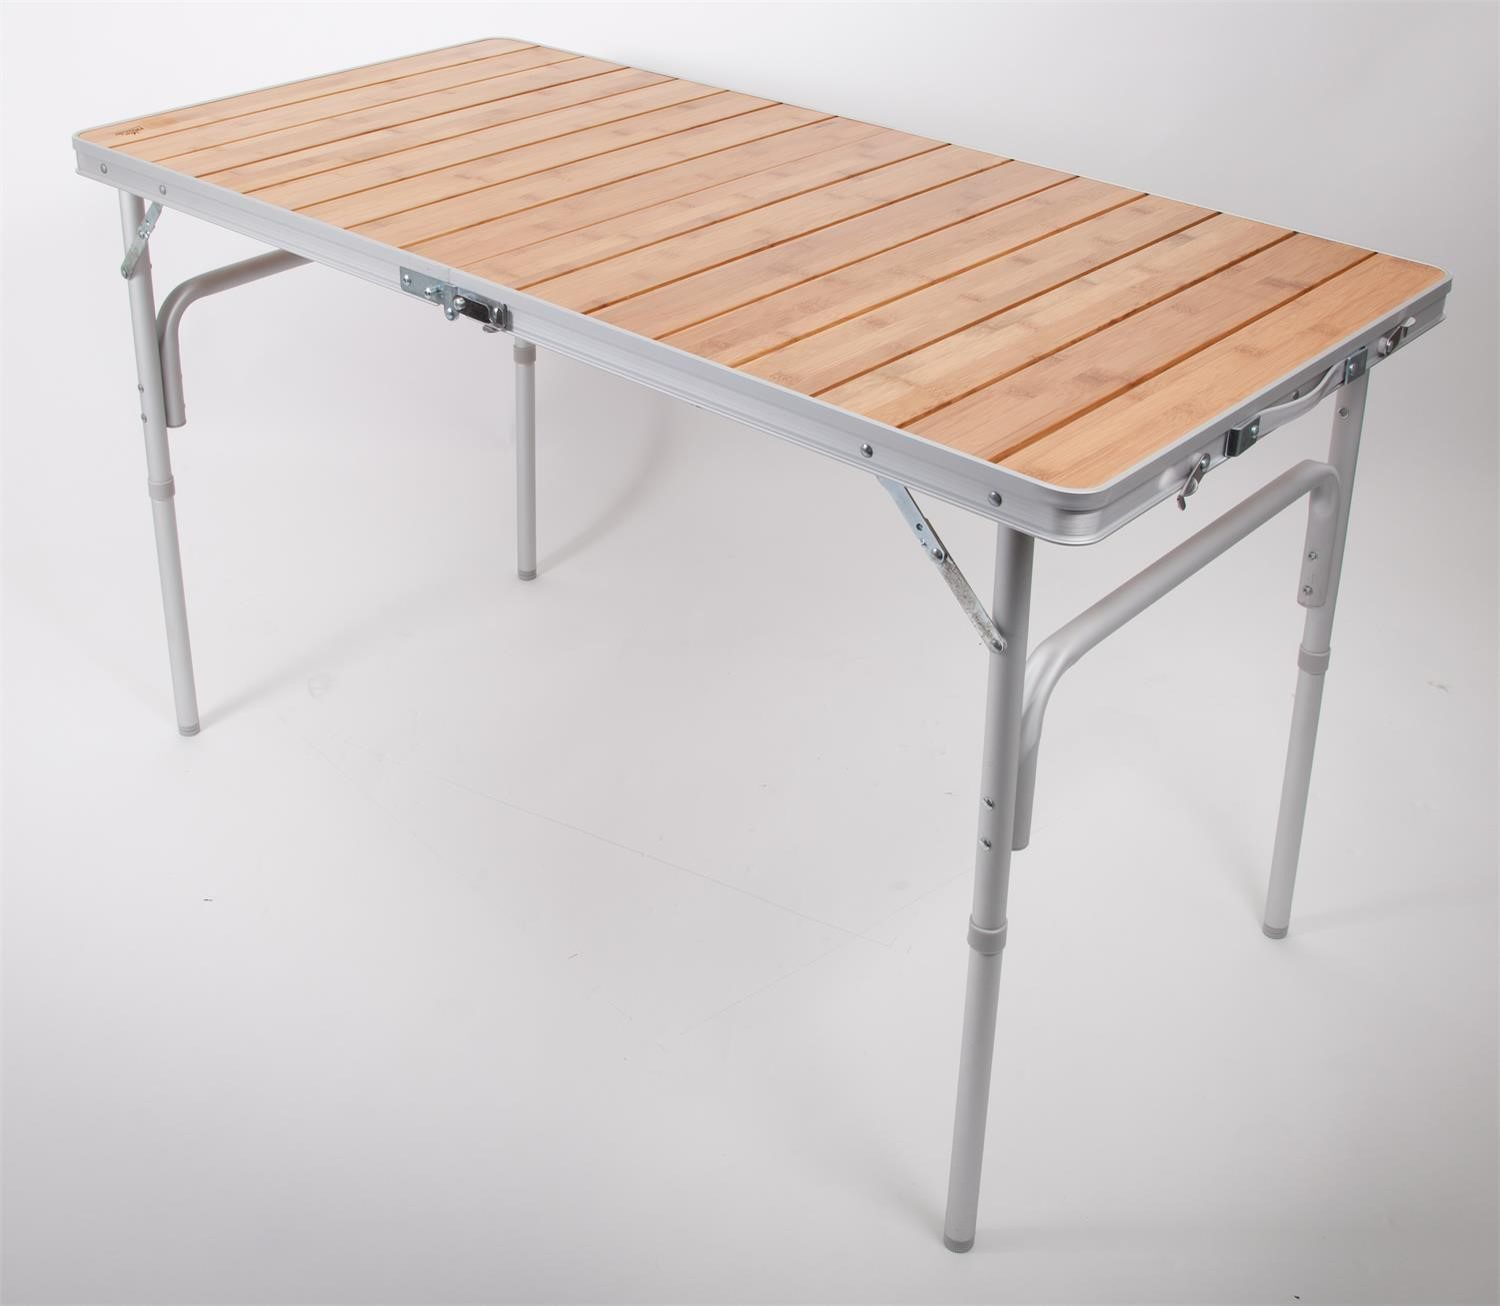 Norcamp Via Mondo Large Bamboo Table